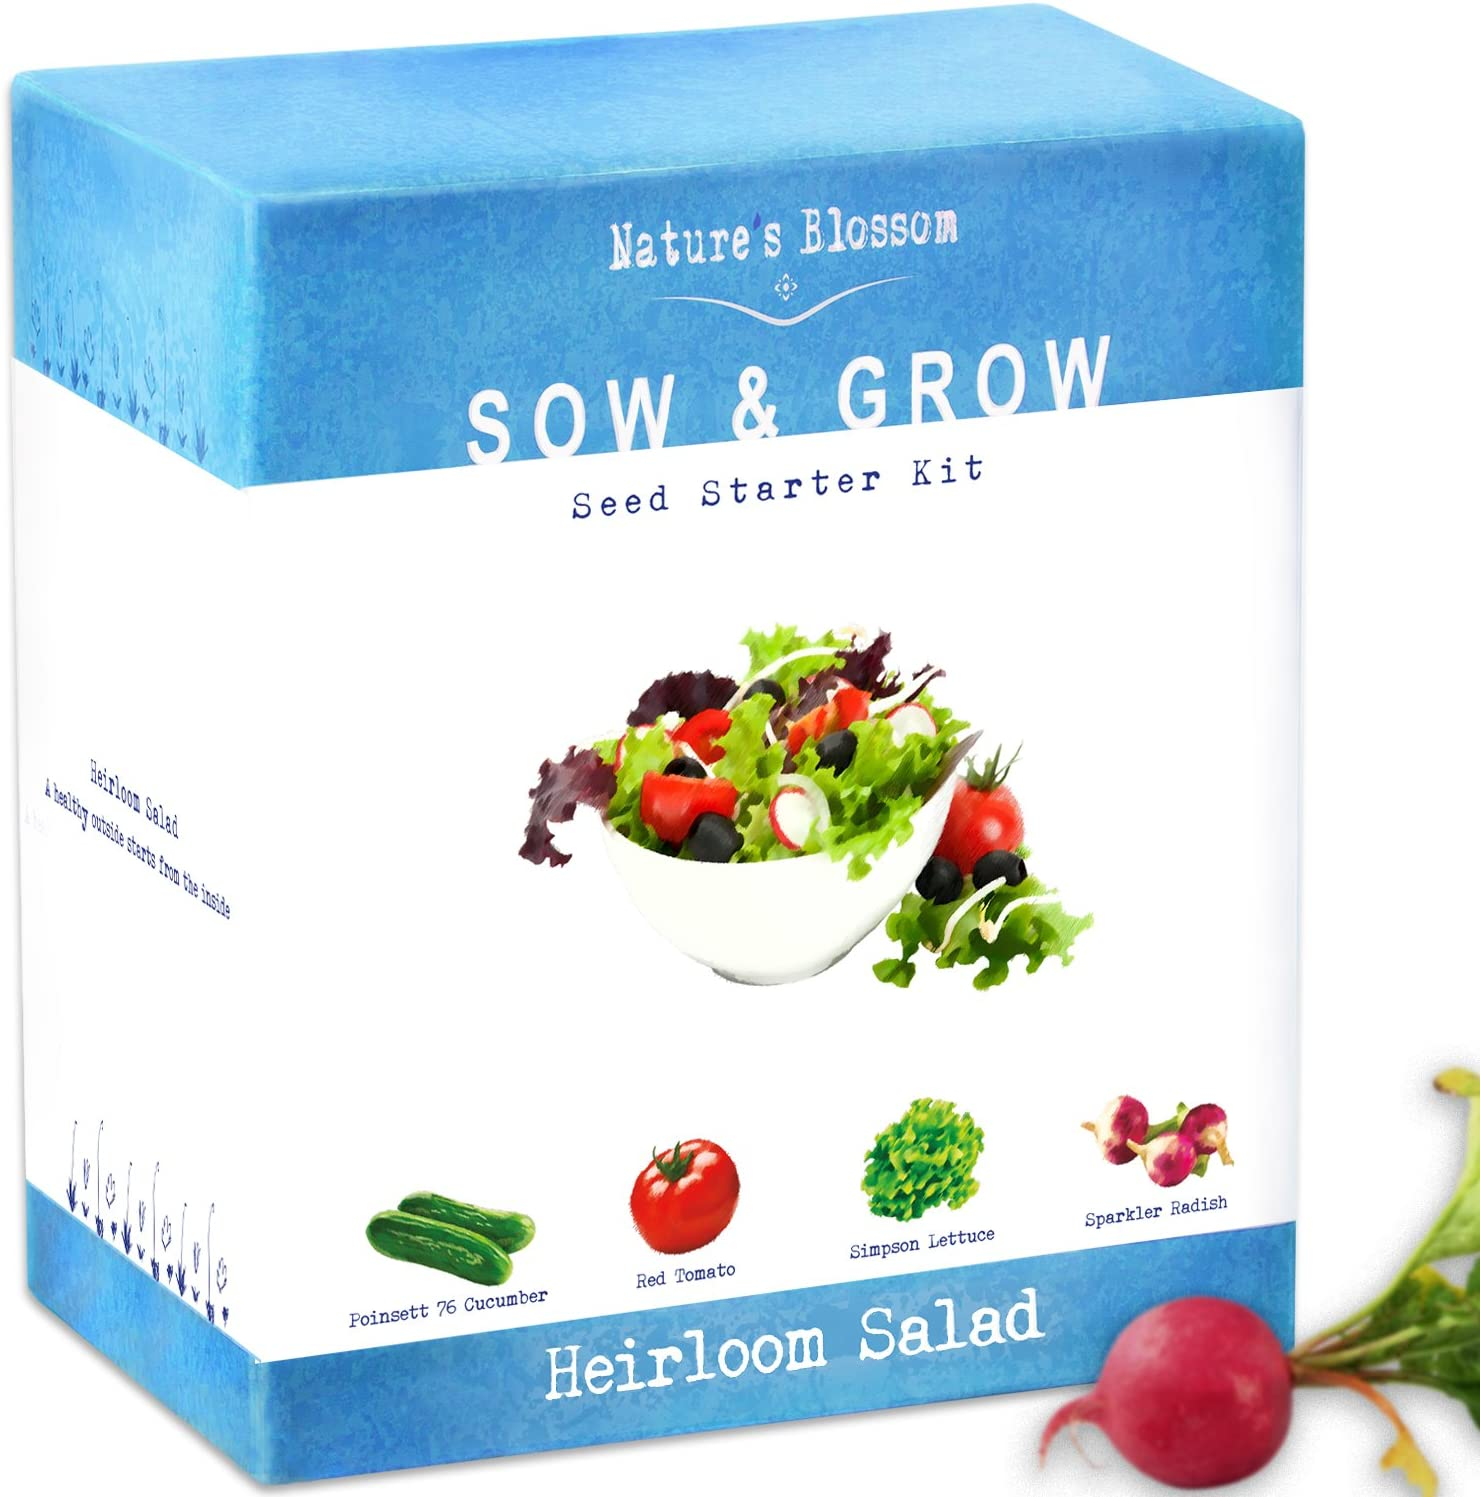 Nature's Blossom Heirloom Vegetables Seed Starter Kit - Grow 4 Types of Plants from Non-GMO Heirloom Seeds: Tomatoes, Cucumbers, Radish, Lettuce. Fun Holidays Garden Gift for Kids and Adults.